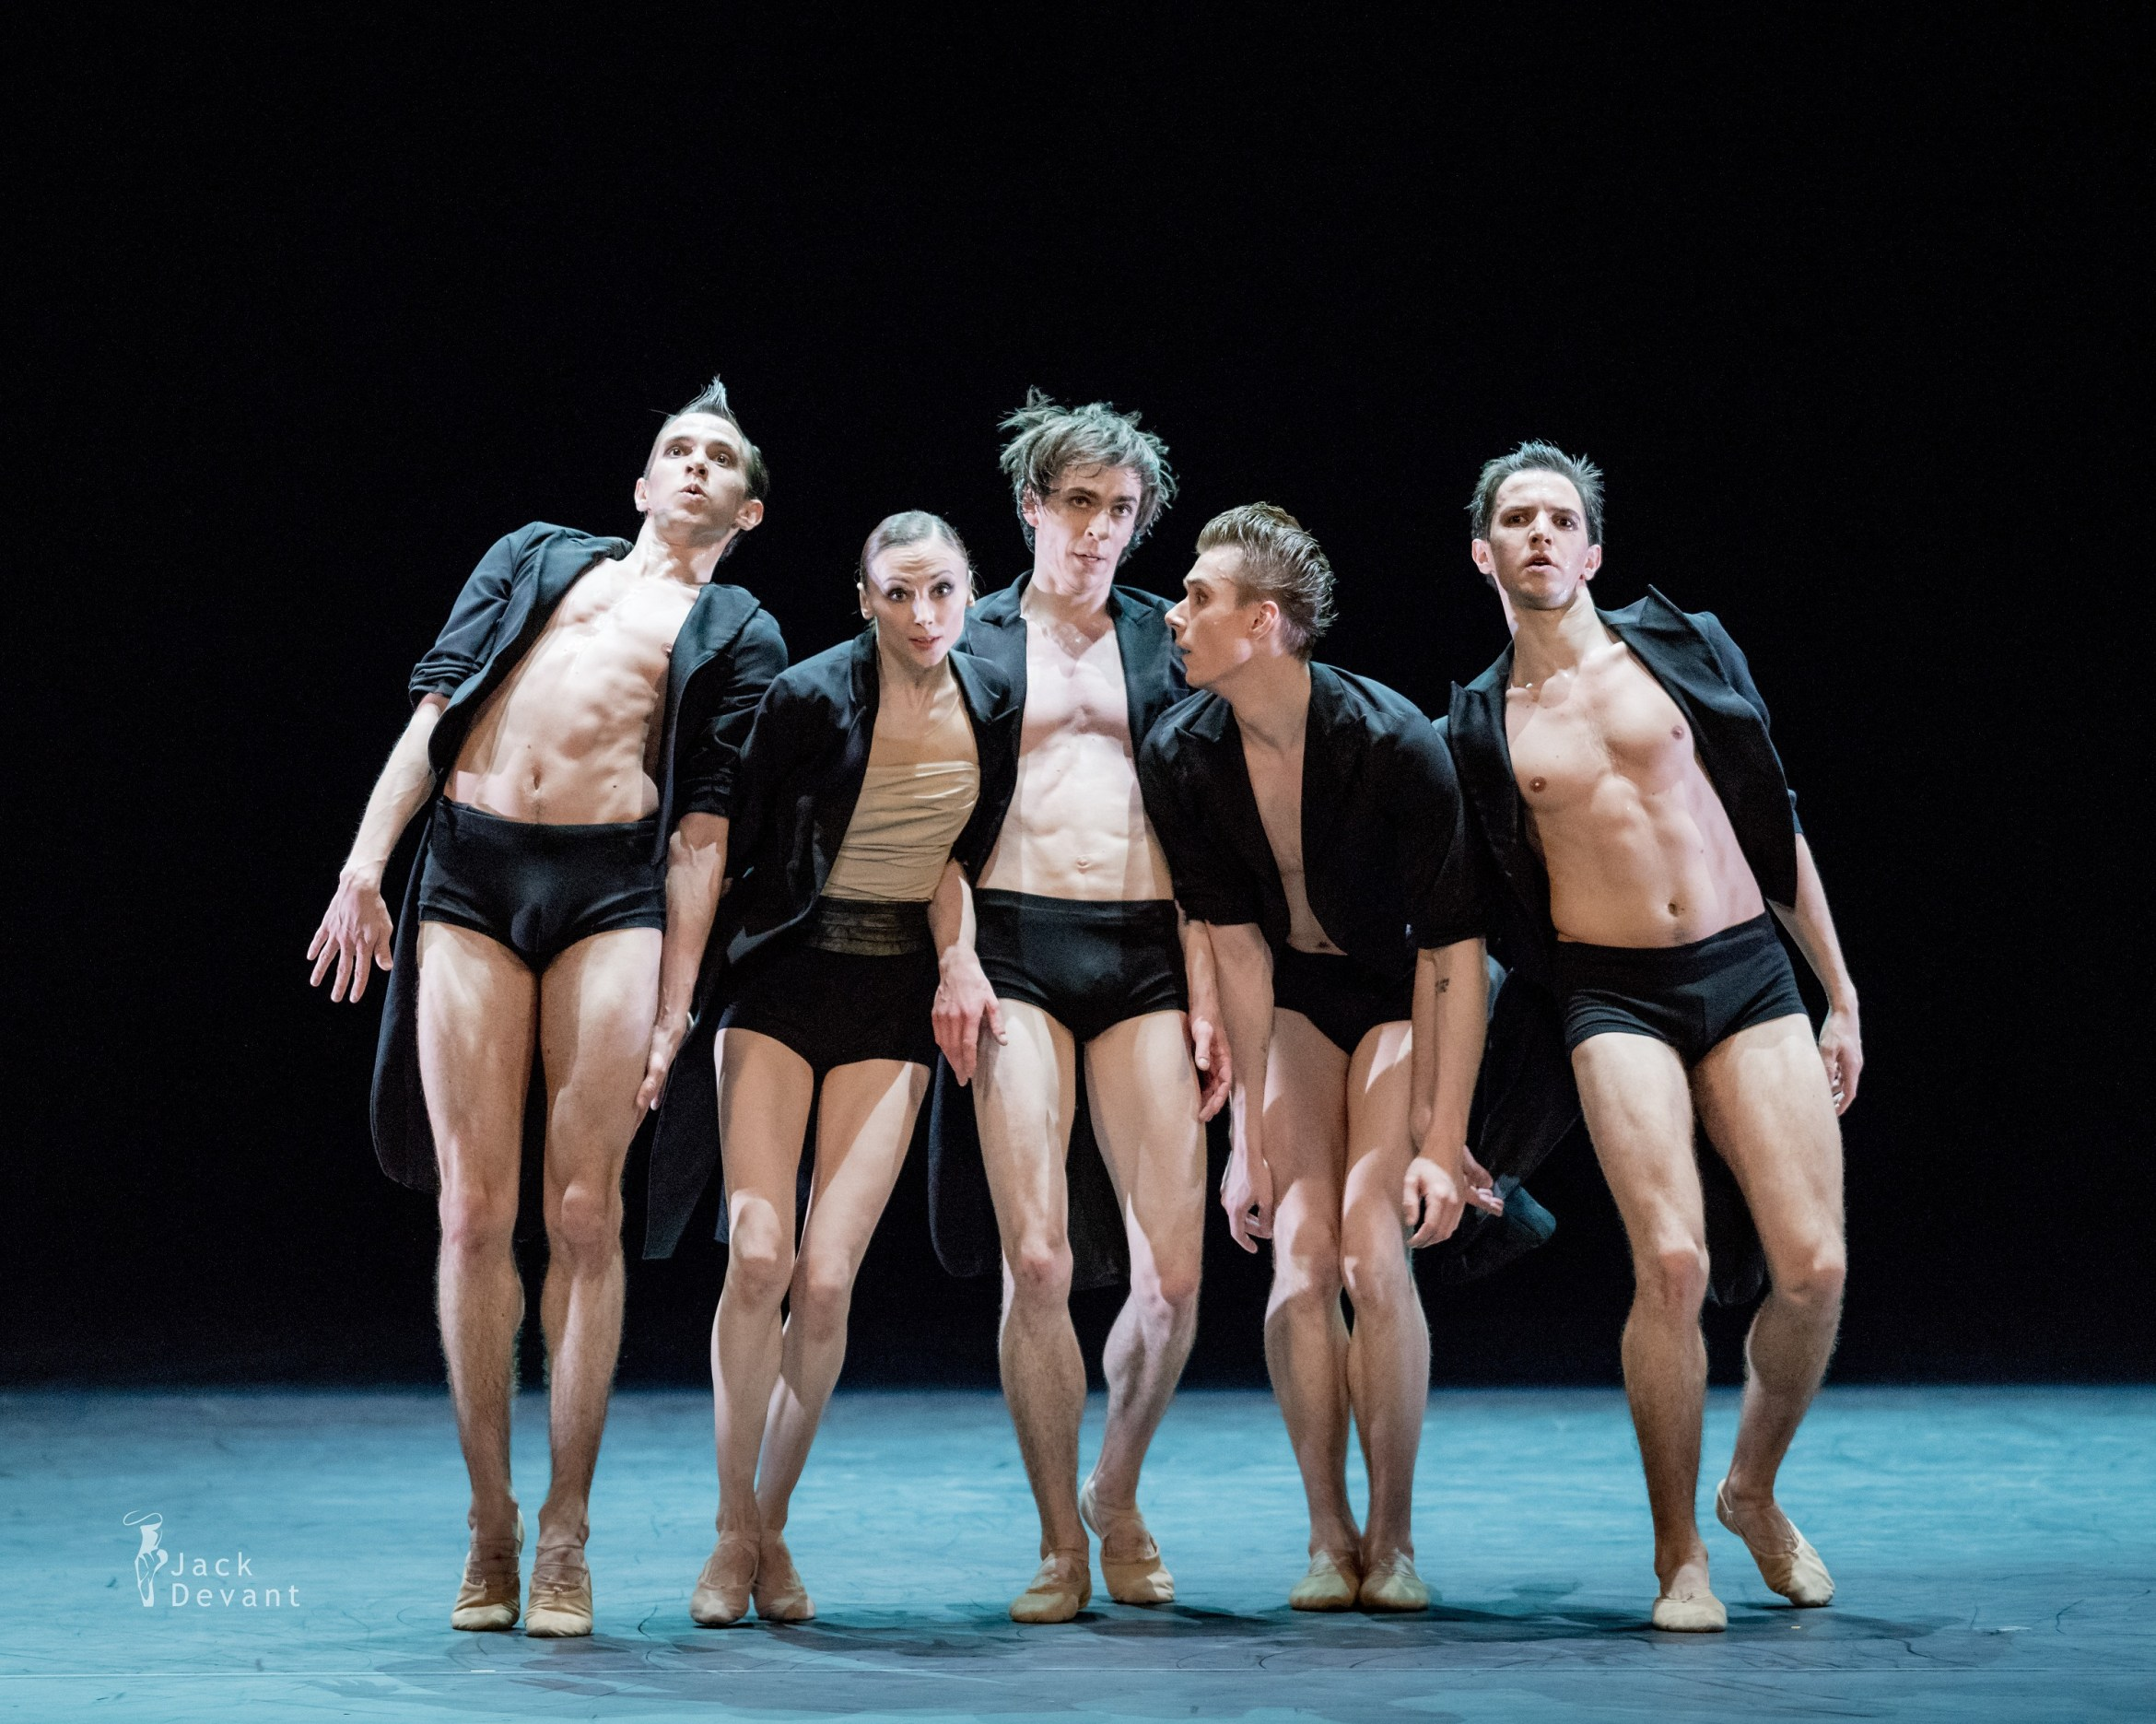 AMORE featuring Svetlana Zakharova (second from left) in Strokes of the Tail photo by Jack Devant.jpg